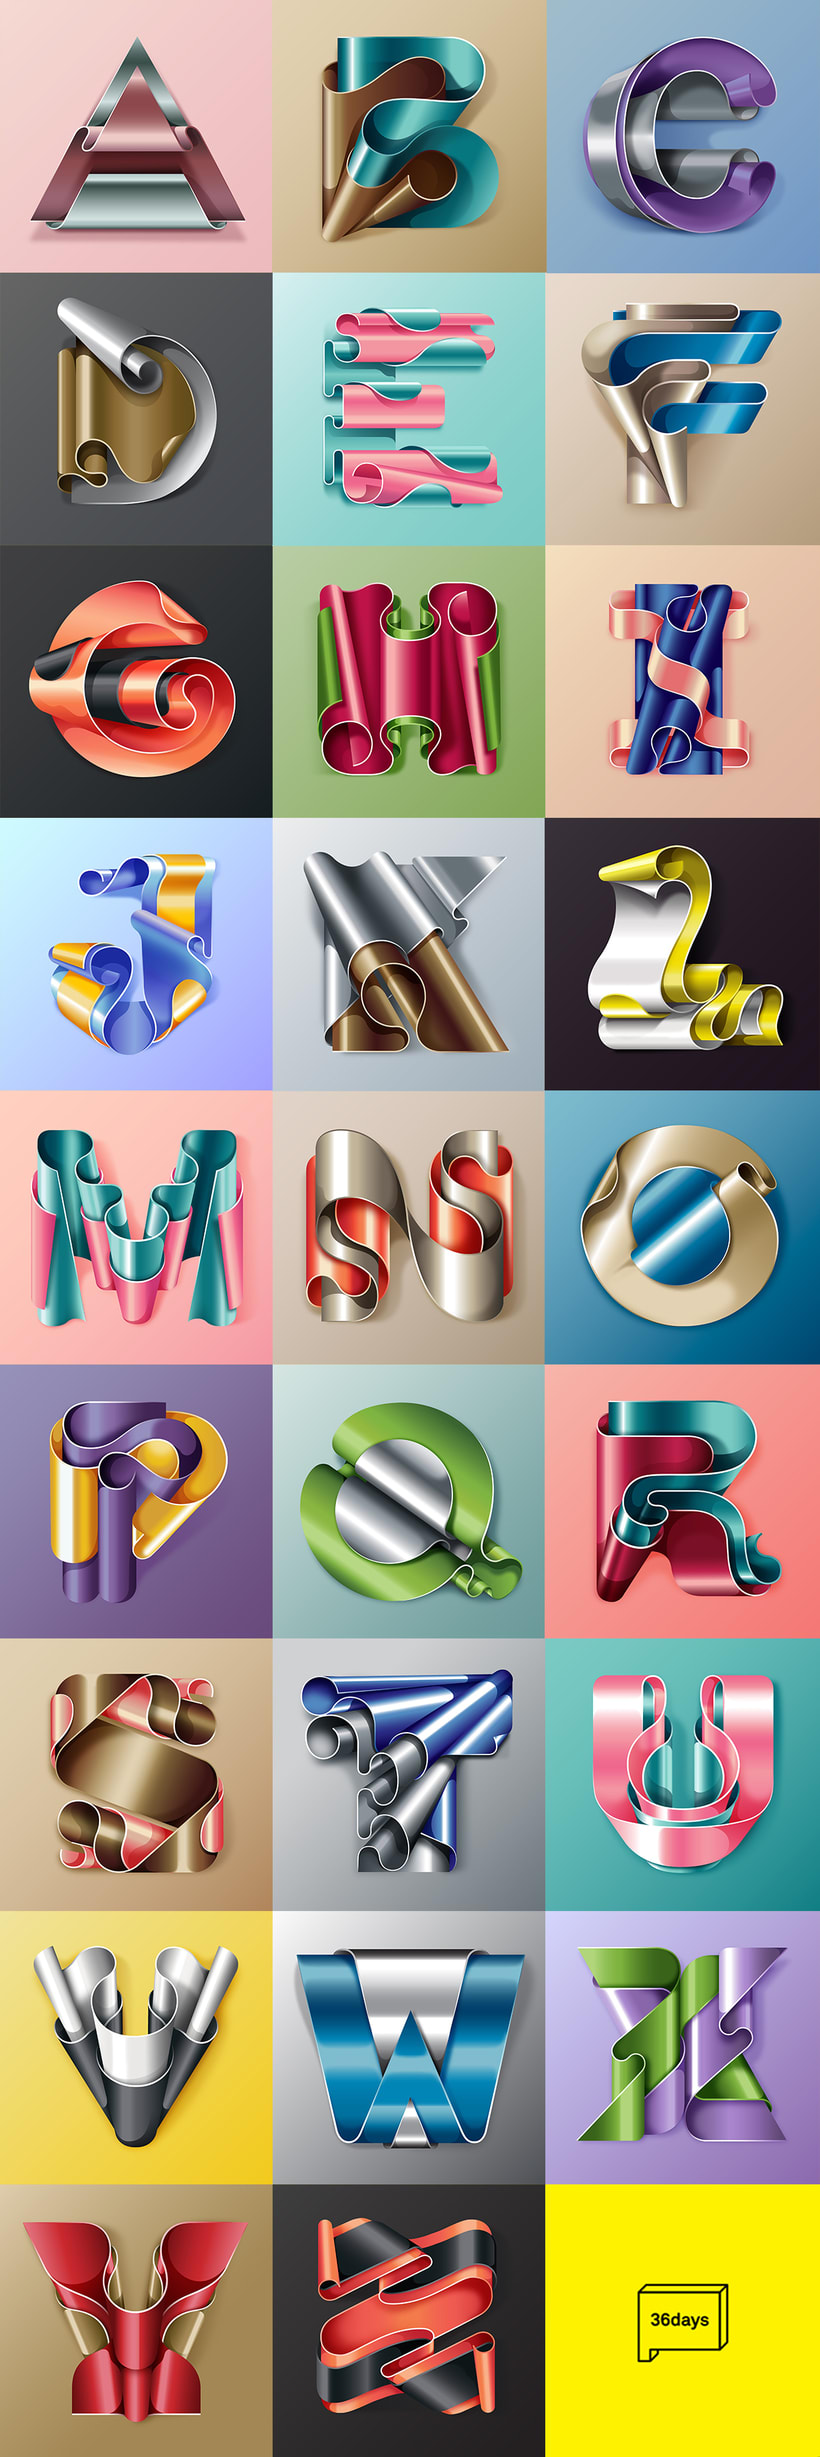 Flexible Surrealism @36daysoftype 2016 1